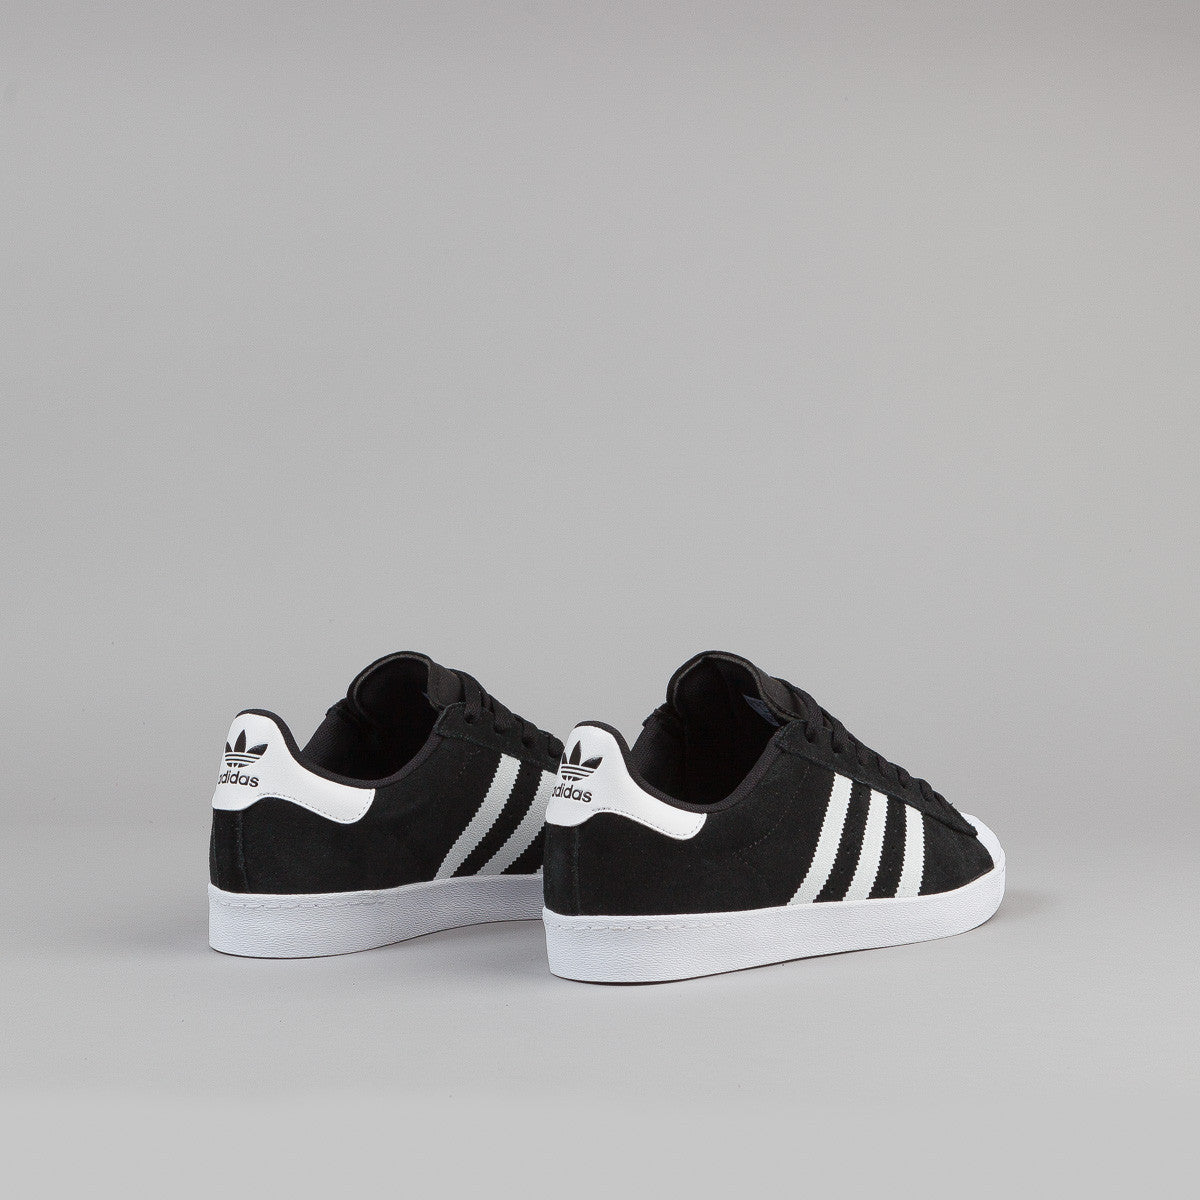 promo code 0500d cd46f Cheap Adidas superstar 2 k g045322 A1 Shoe Store